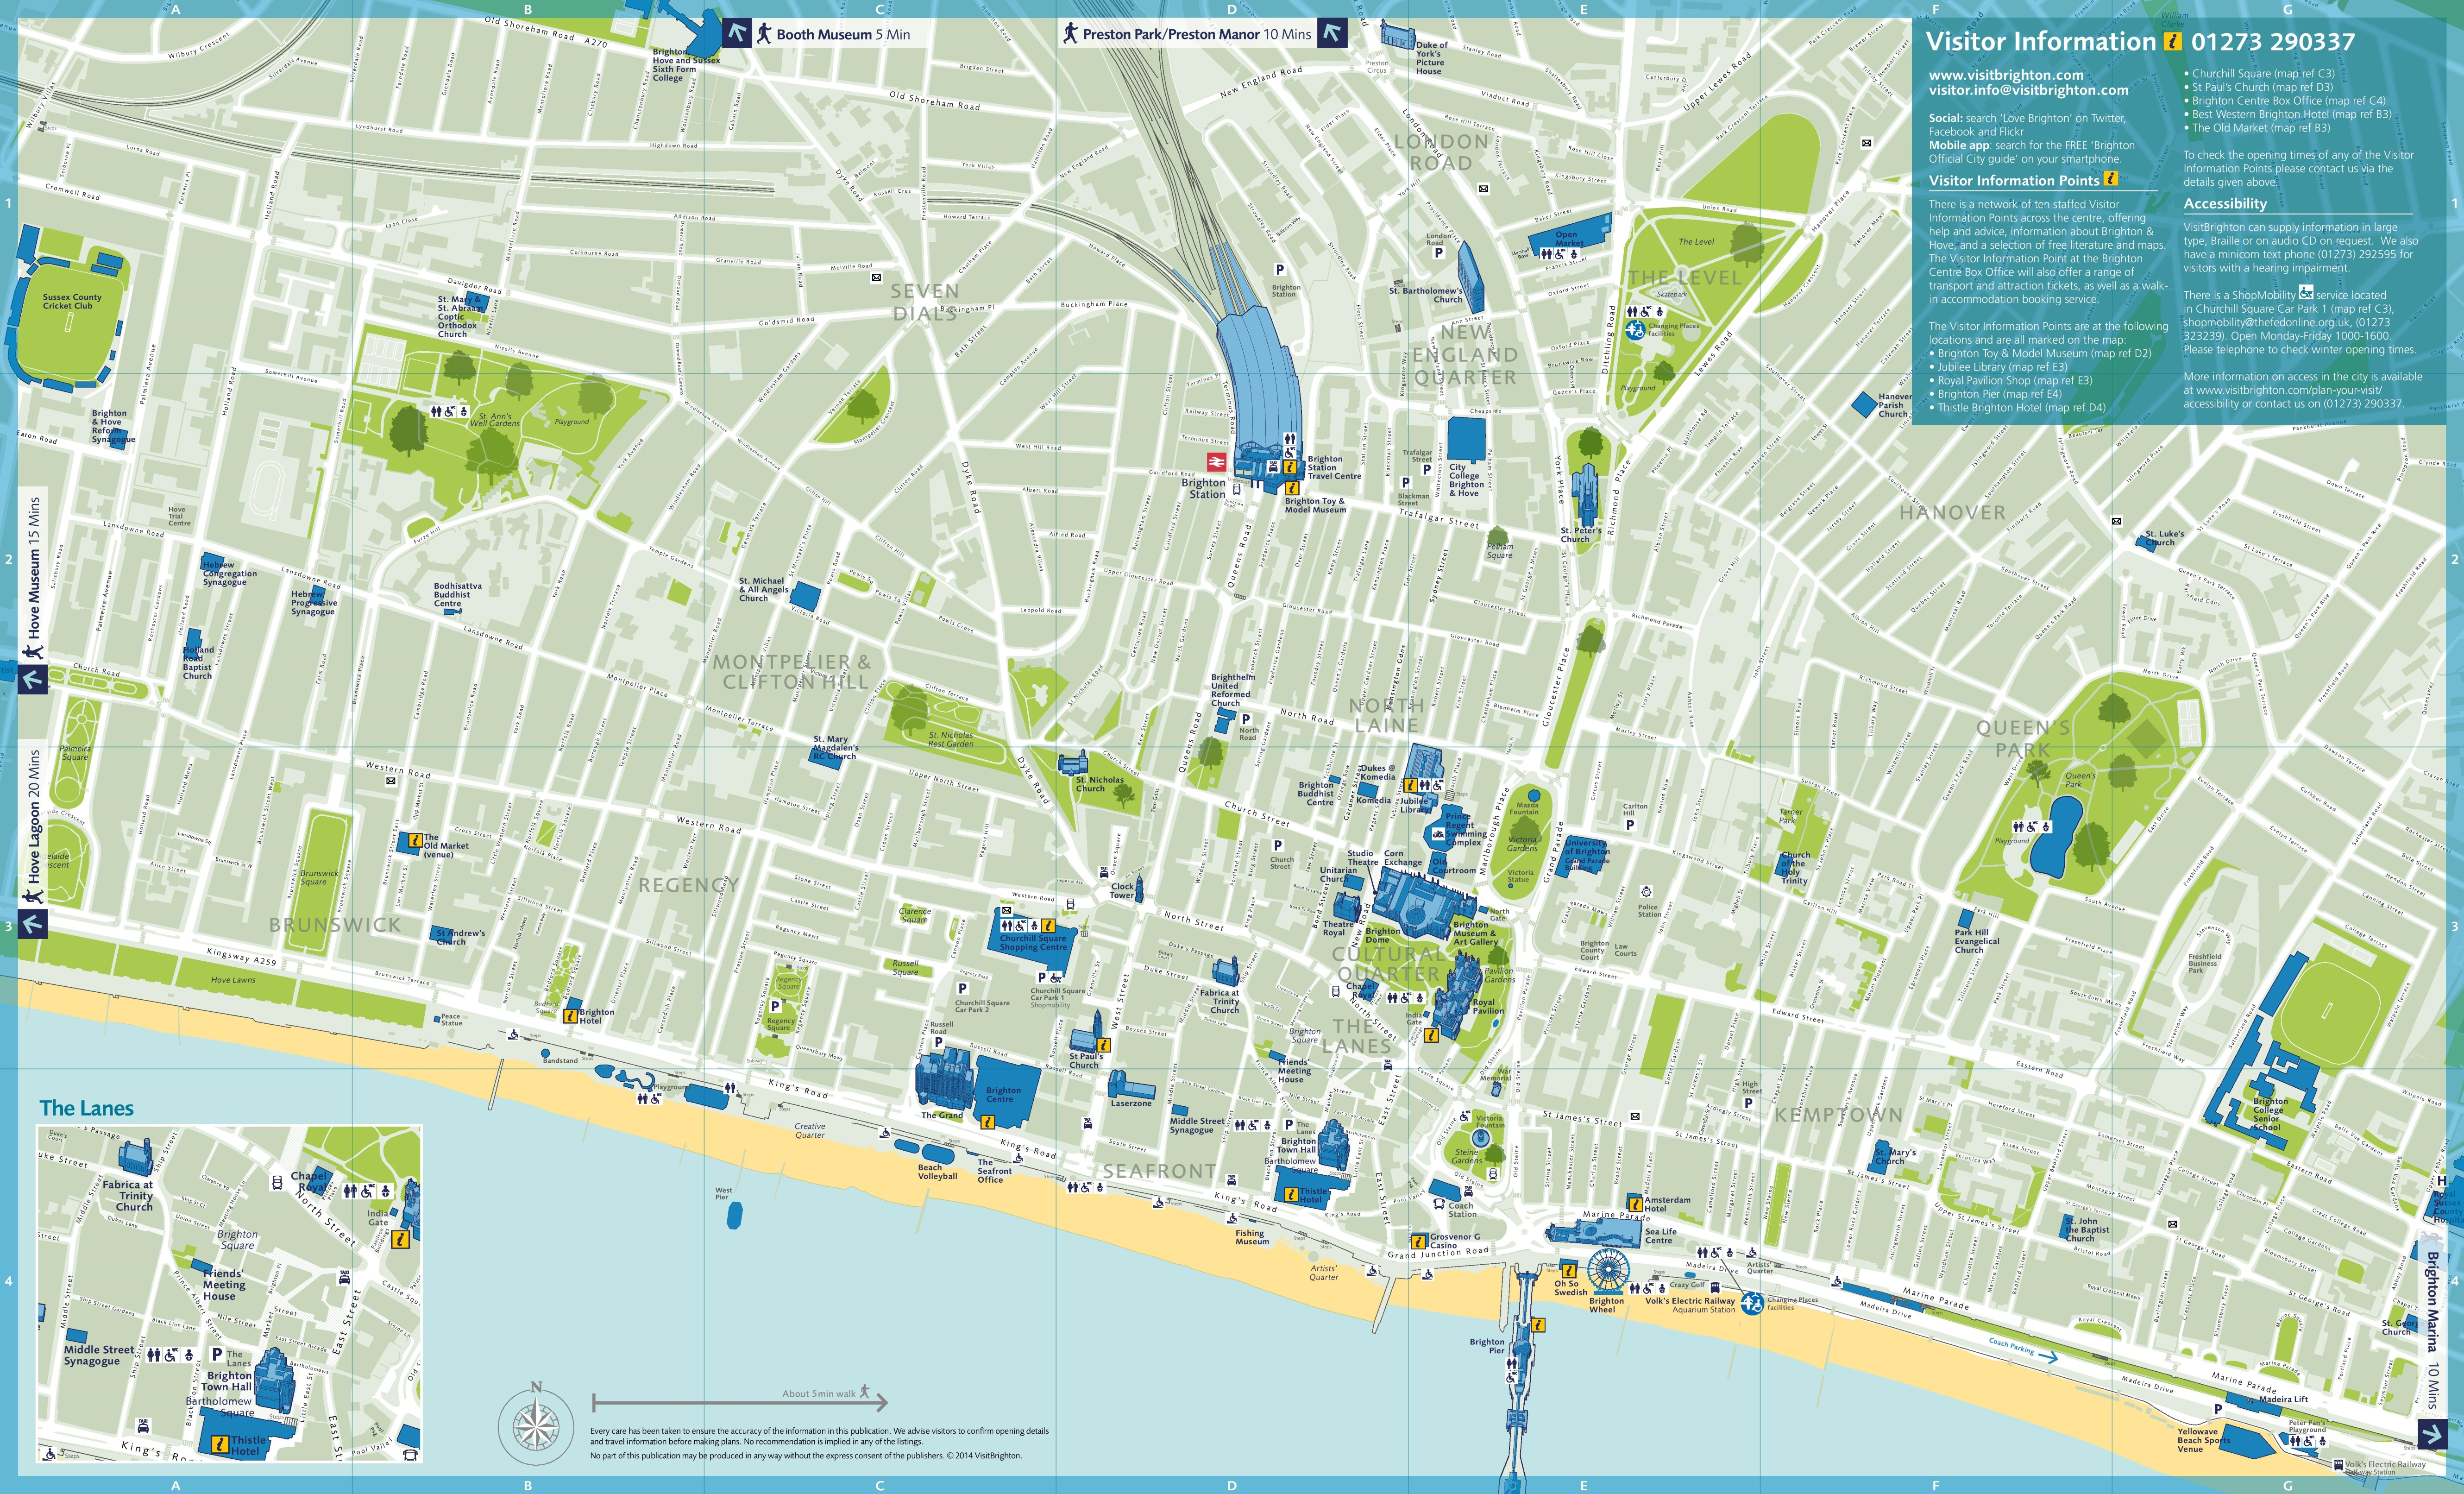 printable city street maps with Brighton Tourist Attractions Map on Horses Tours Bikes moreover Brighton Tourist Attractions Map furthermore Karte von jerusalem 4 78 additionally New York Map Midtown further About Location.